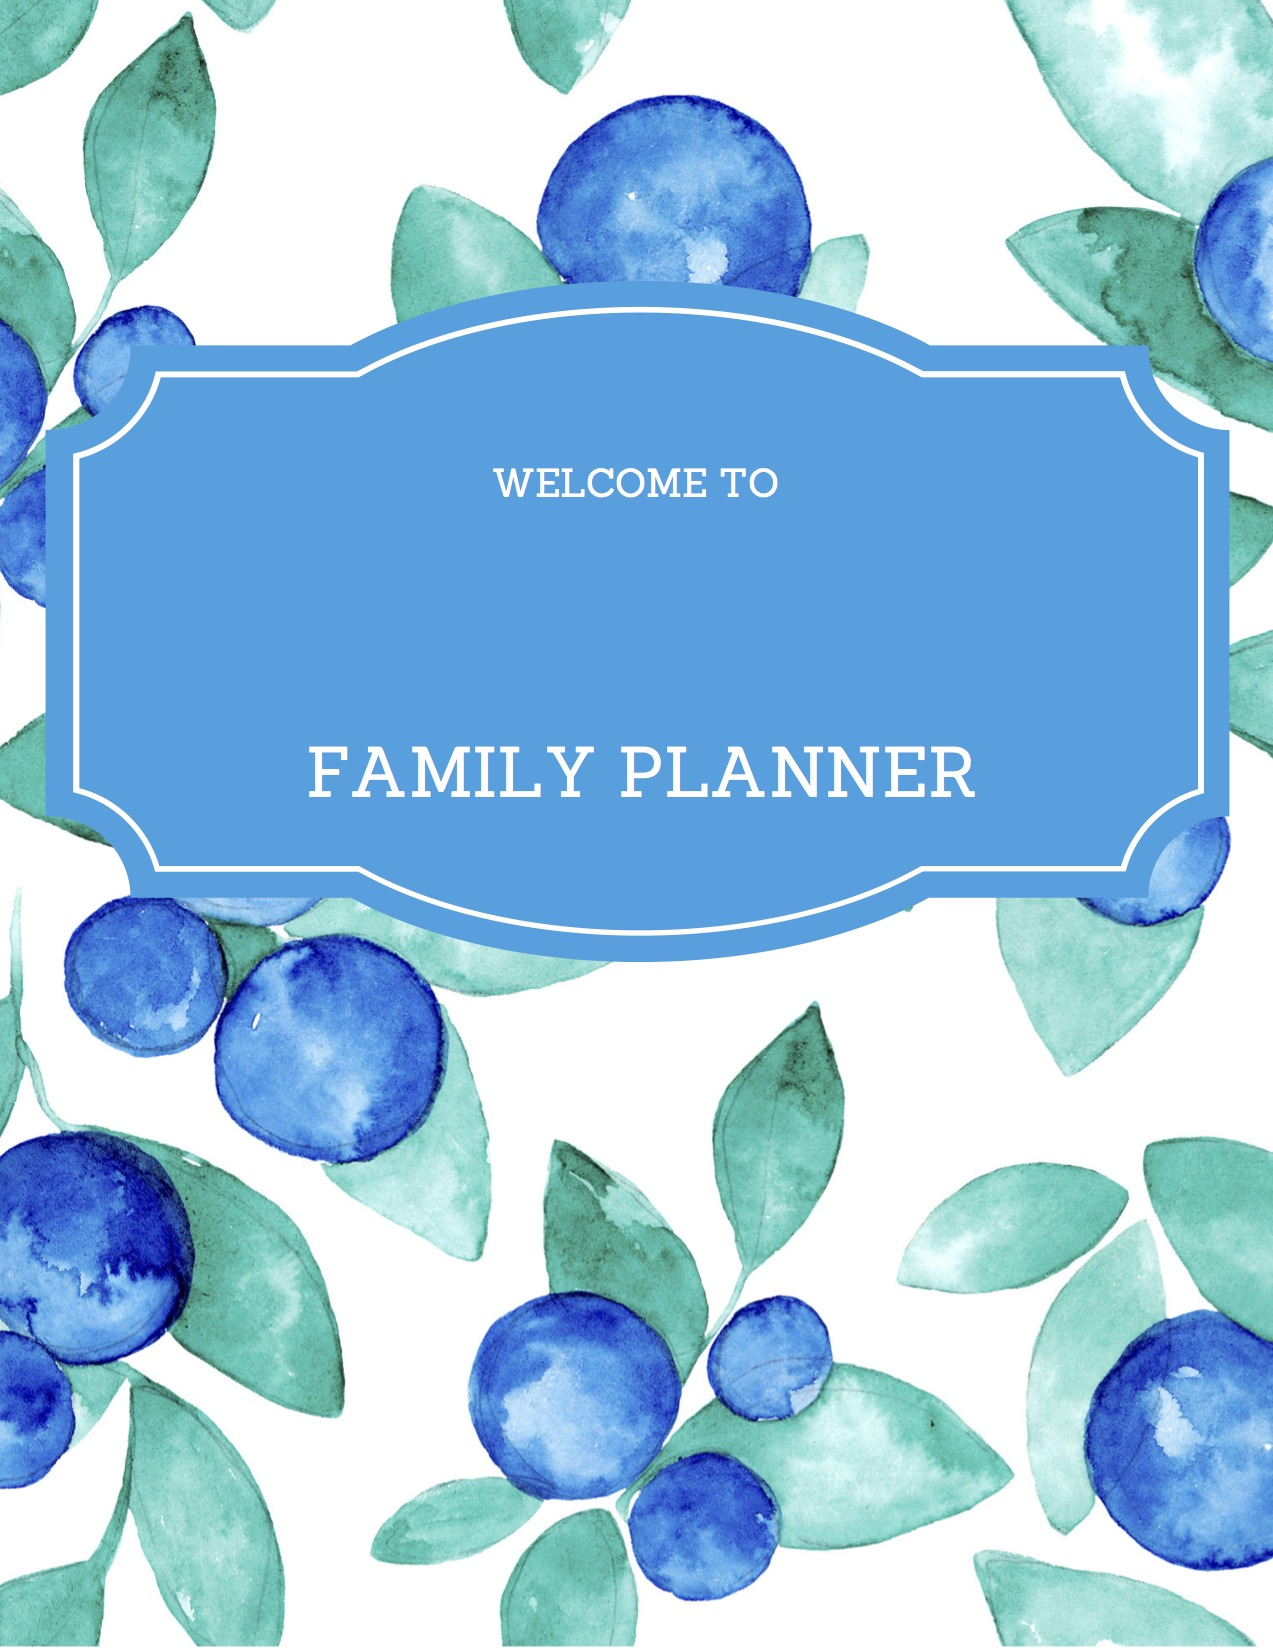 photo relating to Free Printable Family Planner called Free of charge PRINTABLE: Relatives Planner - Dinner Applications, Contacts and Further more